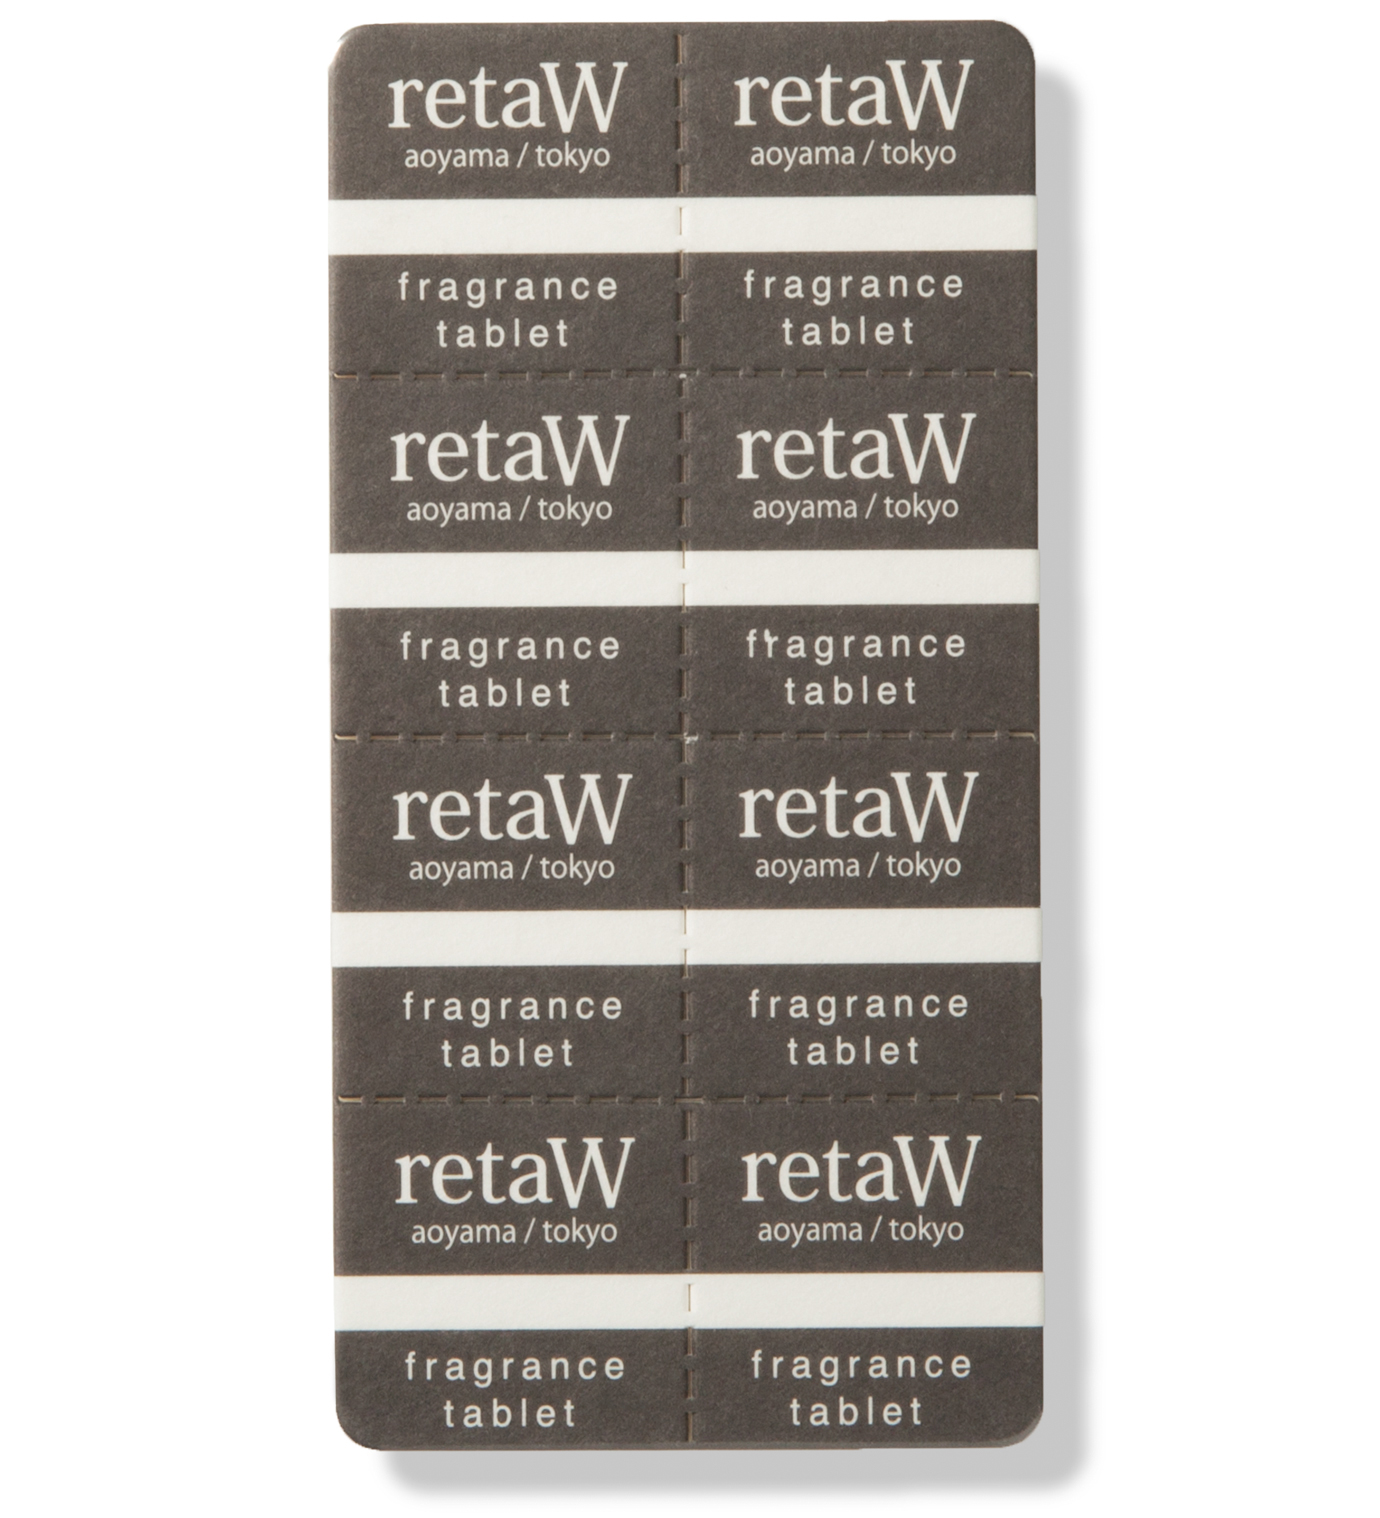 retaW Allen Fragrance Tablet